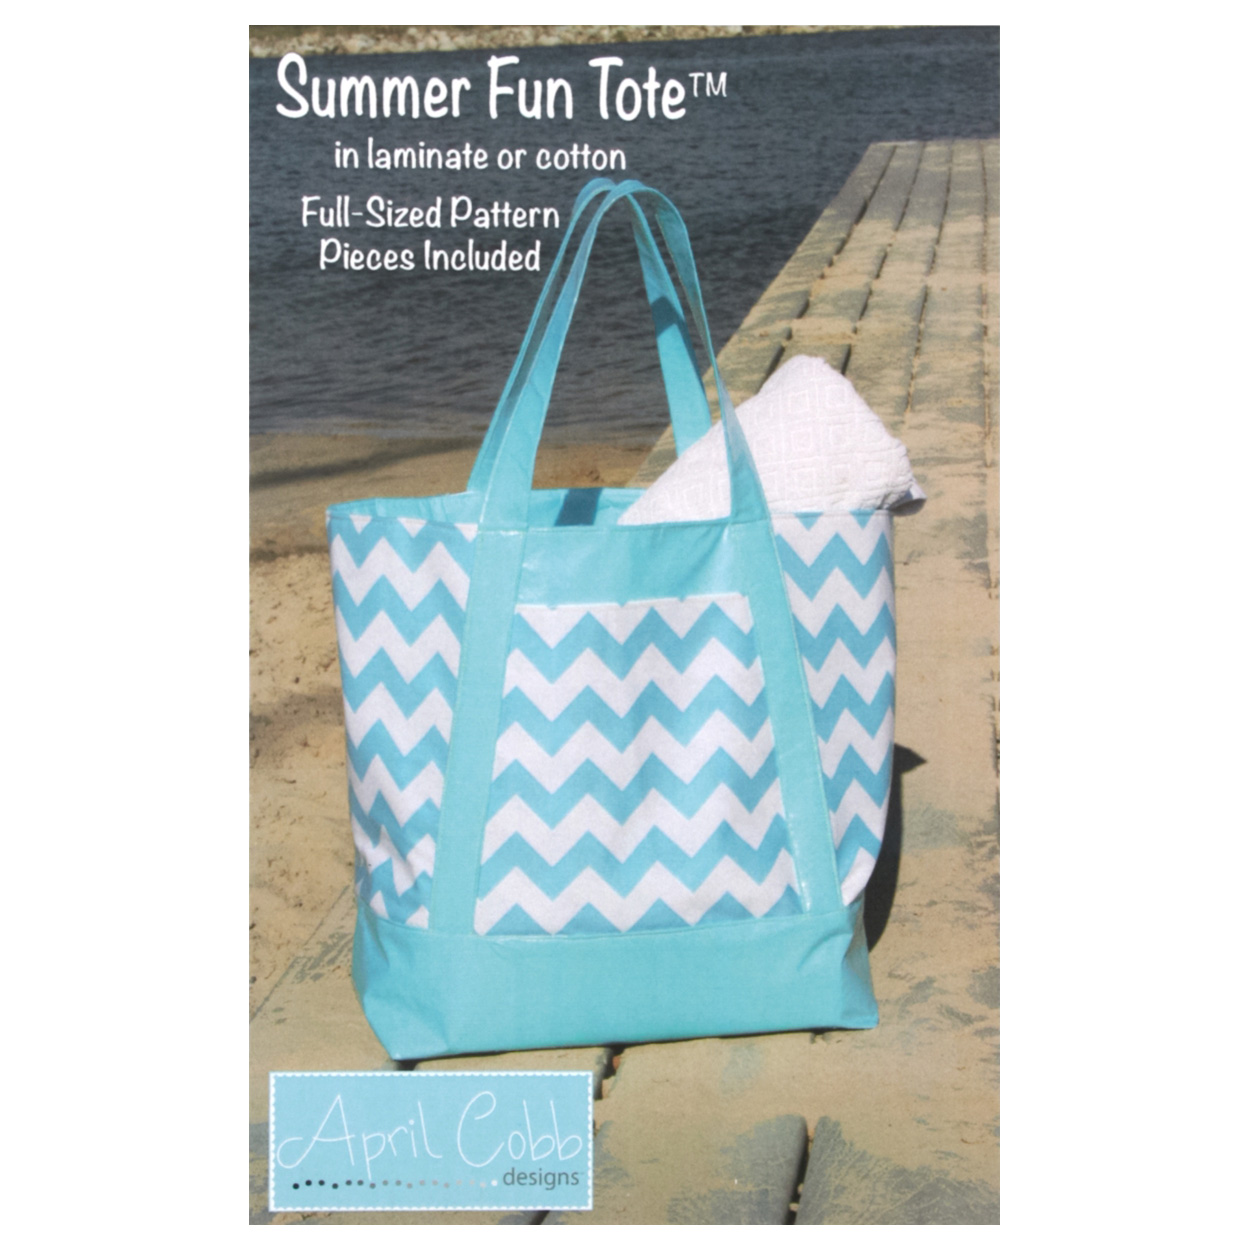 April Cobb Summer Fun Bag Pattern